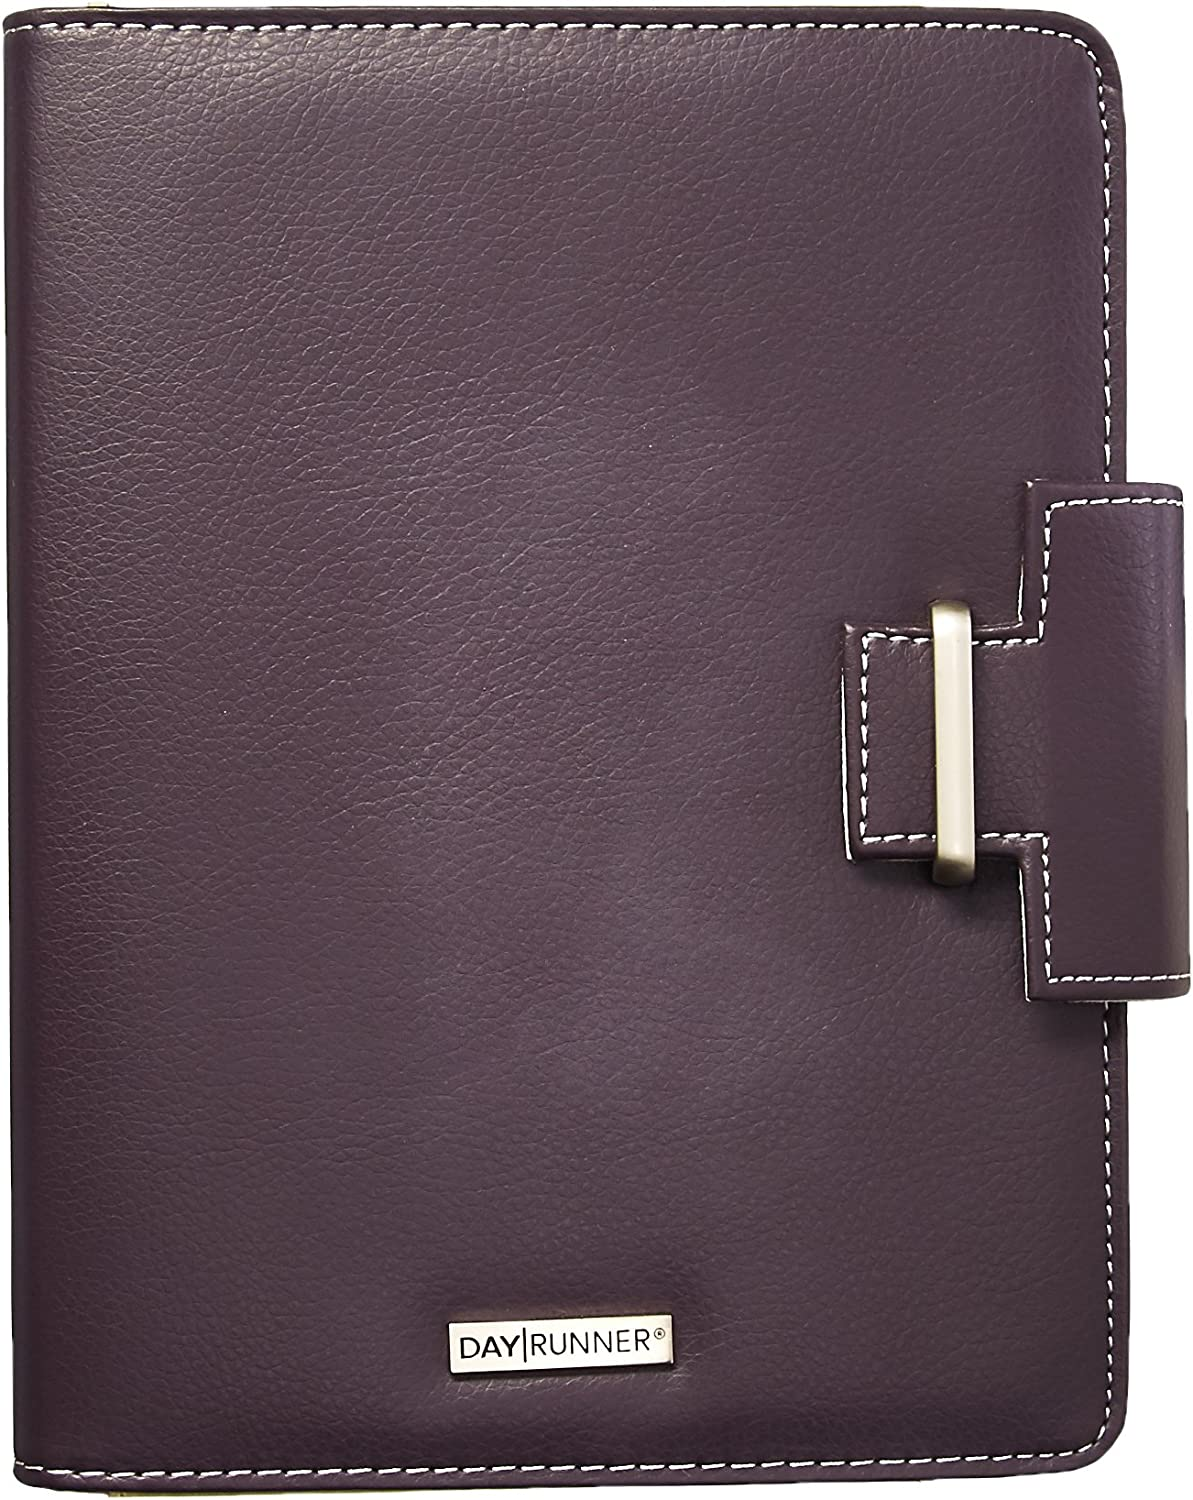 Day Runner 4010214 Terramo Refillable Planner, 5 1/2 x 8 1/2, Eggplant